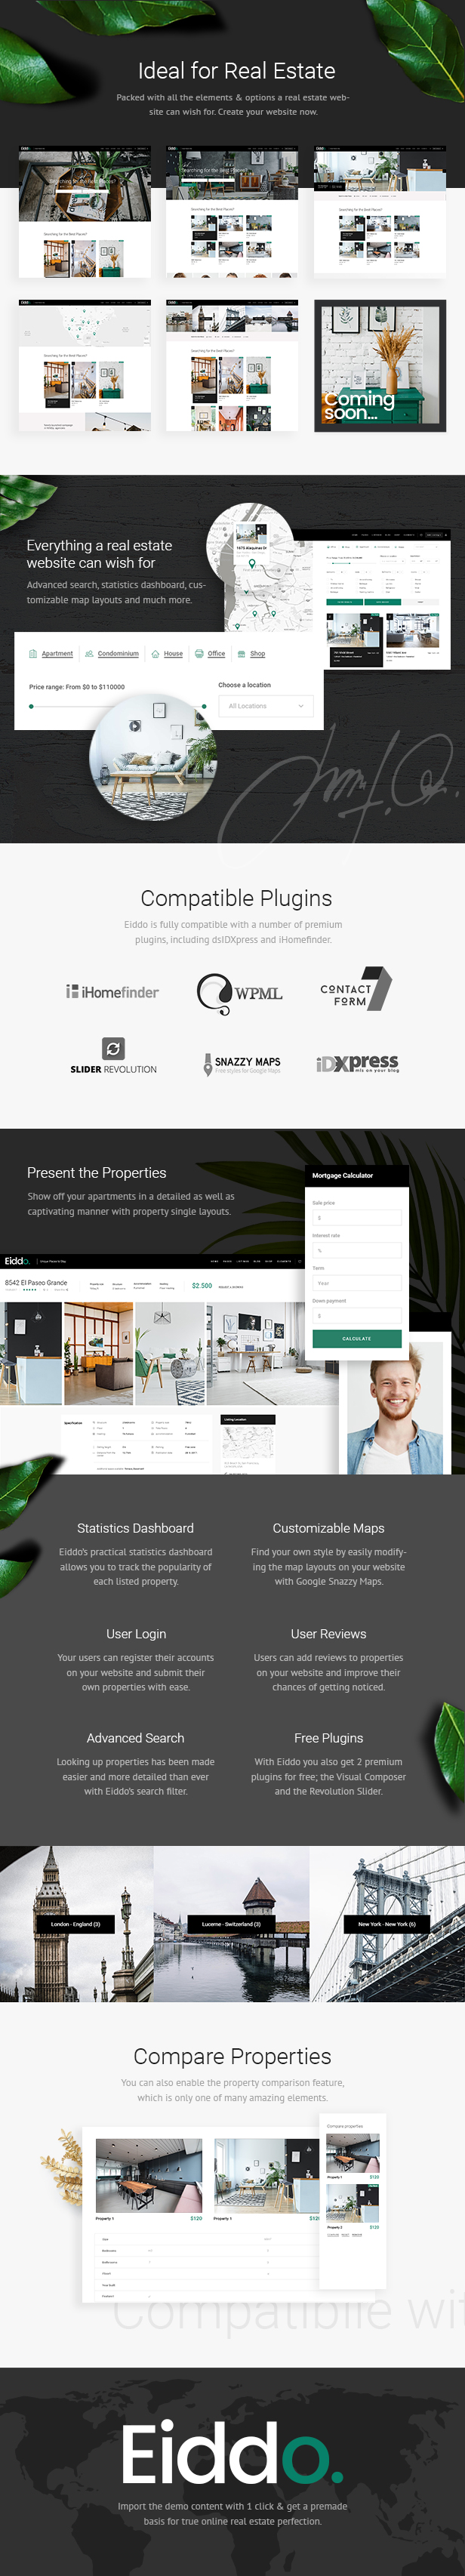 Eiddo – A Theme for Real Estate Agencies and Realtors (Real Estate)